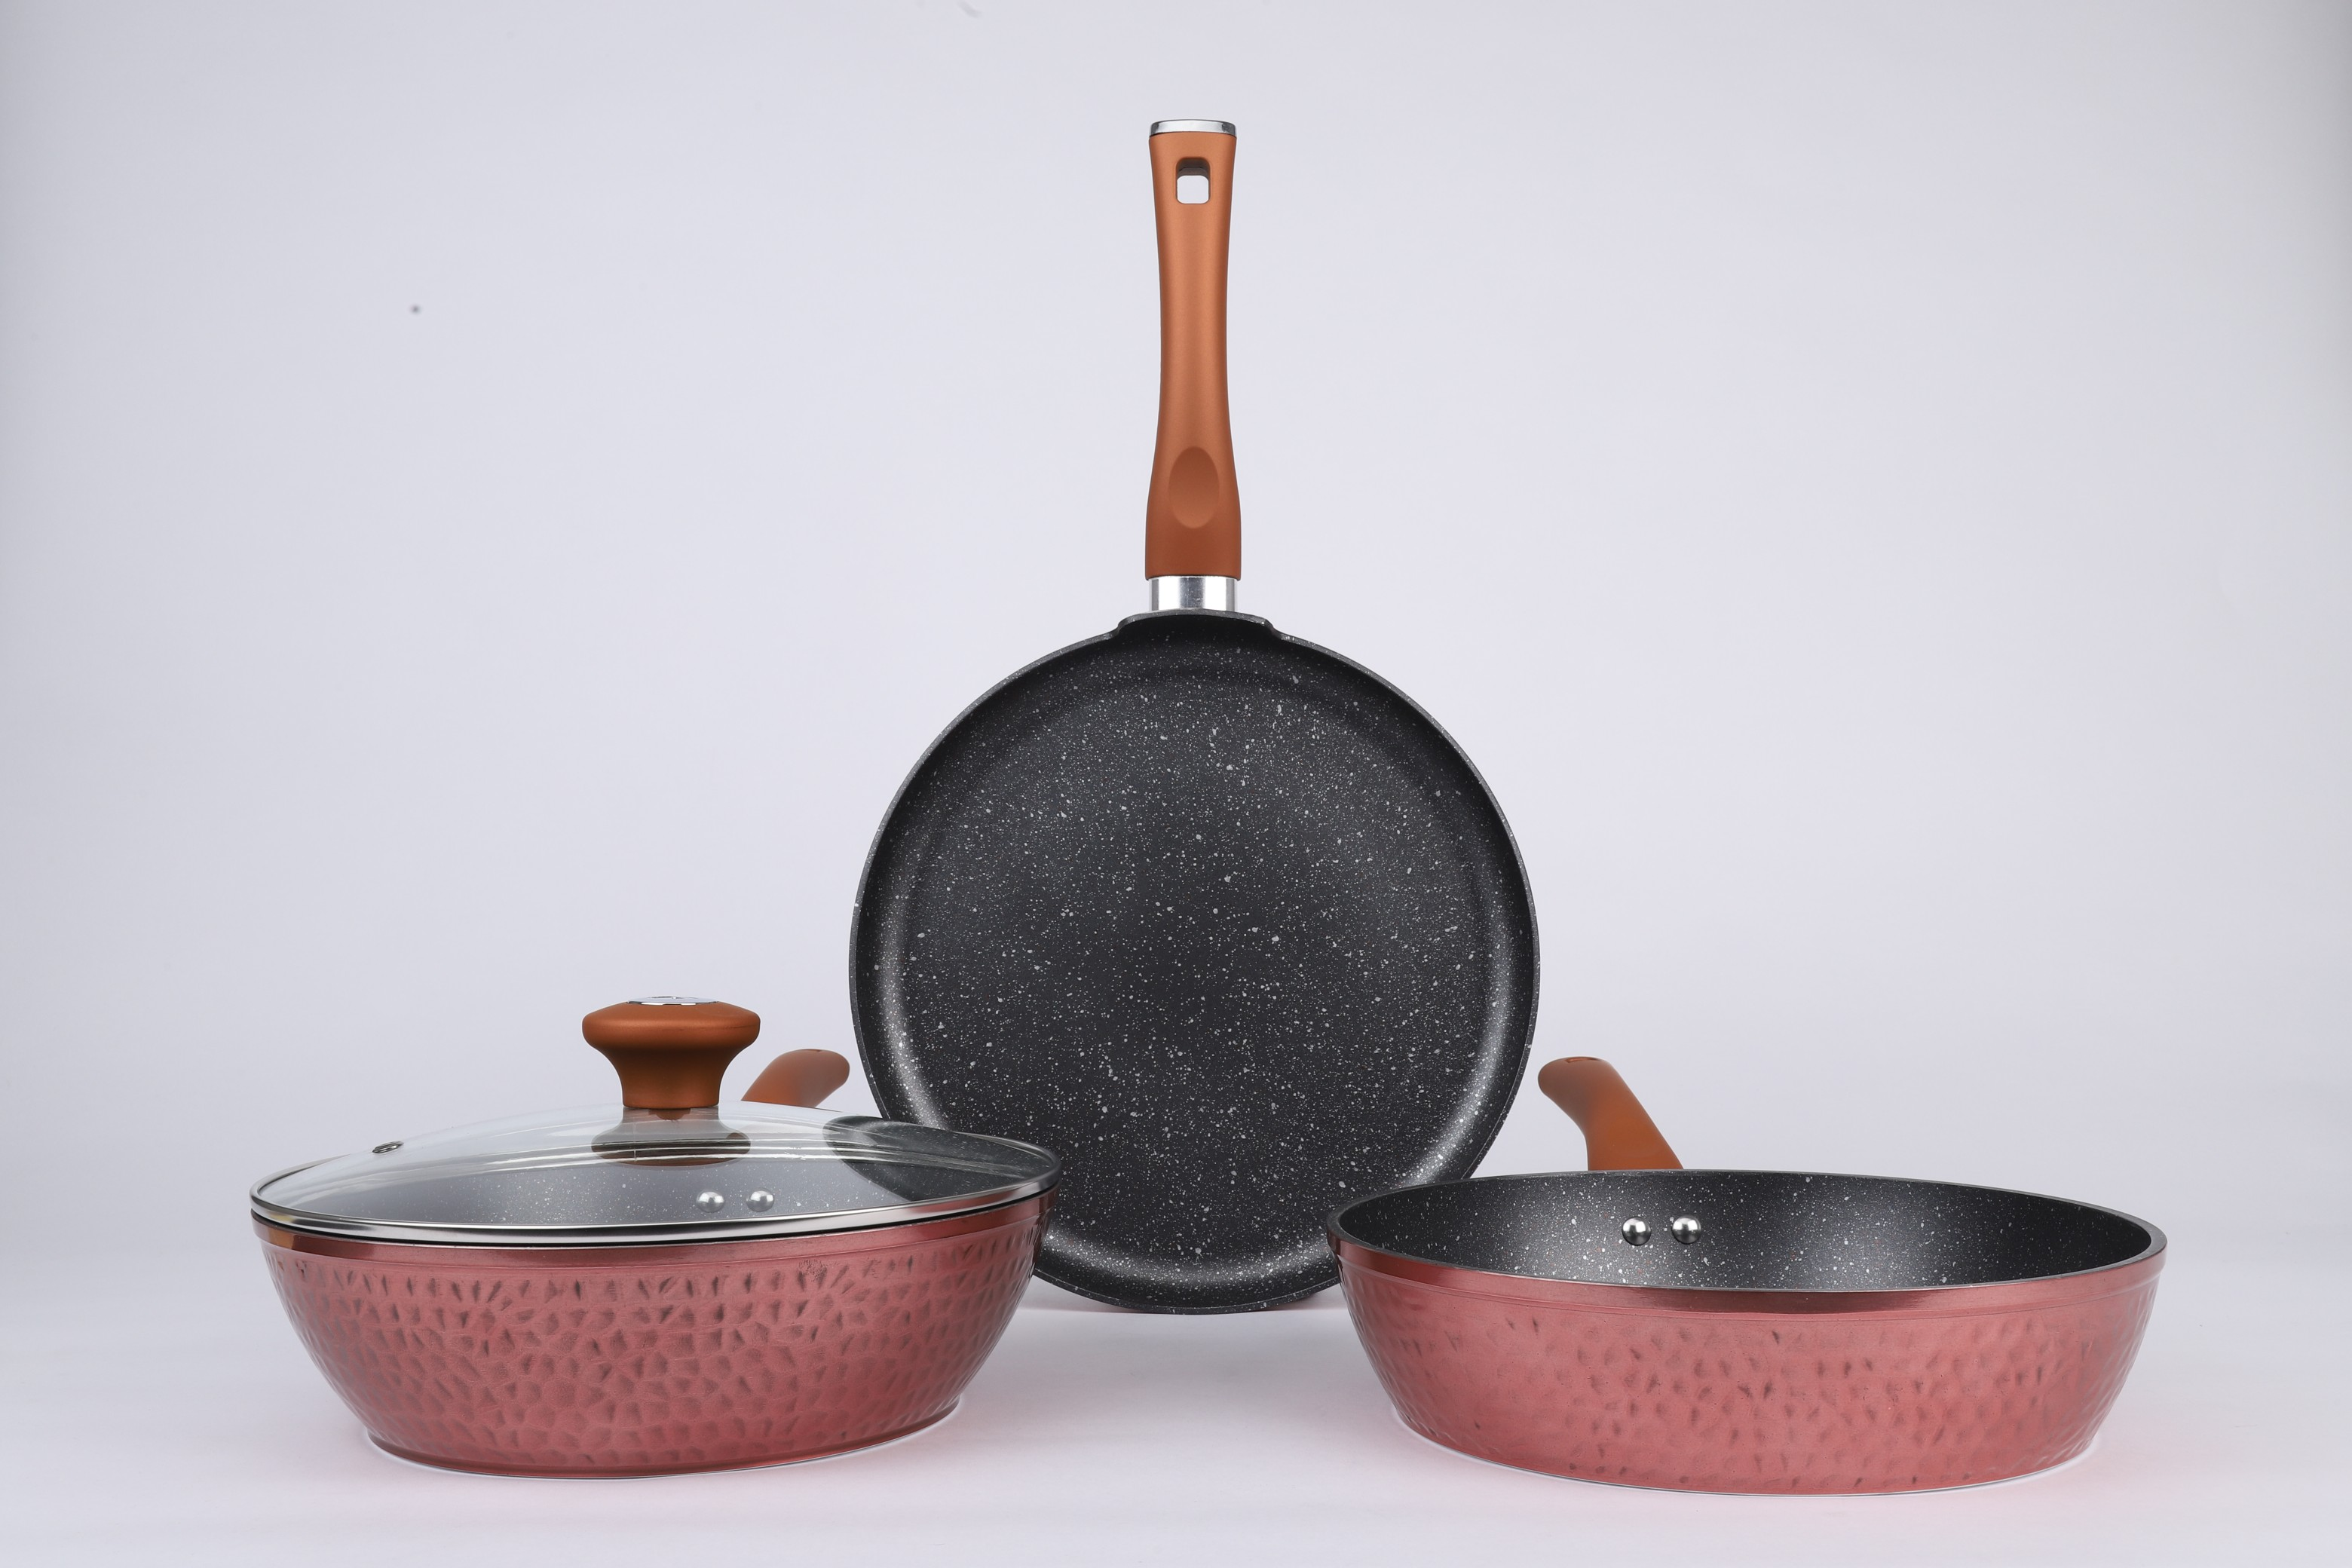 Vikas Khanna Die Cast Hammer 4pc cookwareset Stainless steel cookware sets in Copper Colour by Bergner